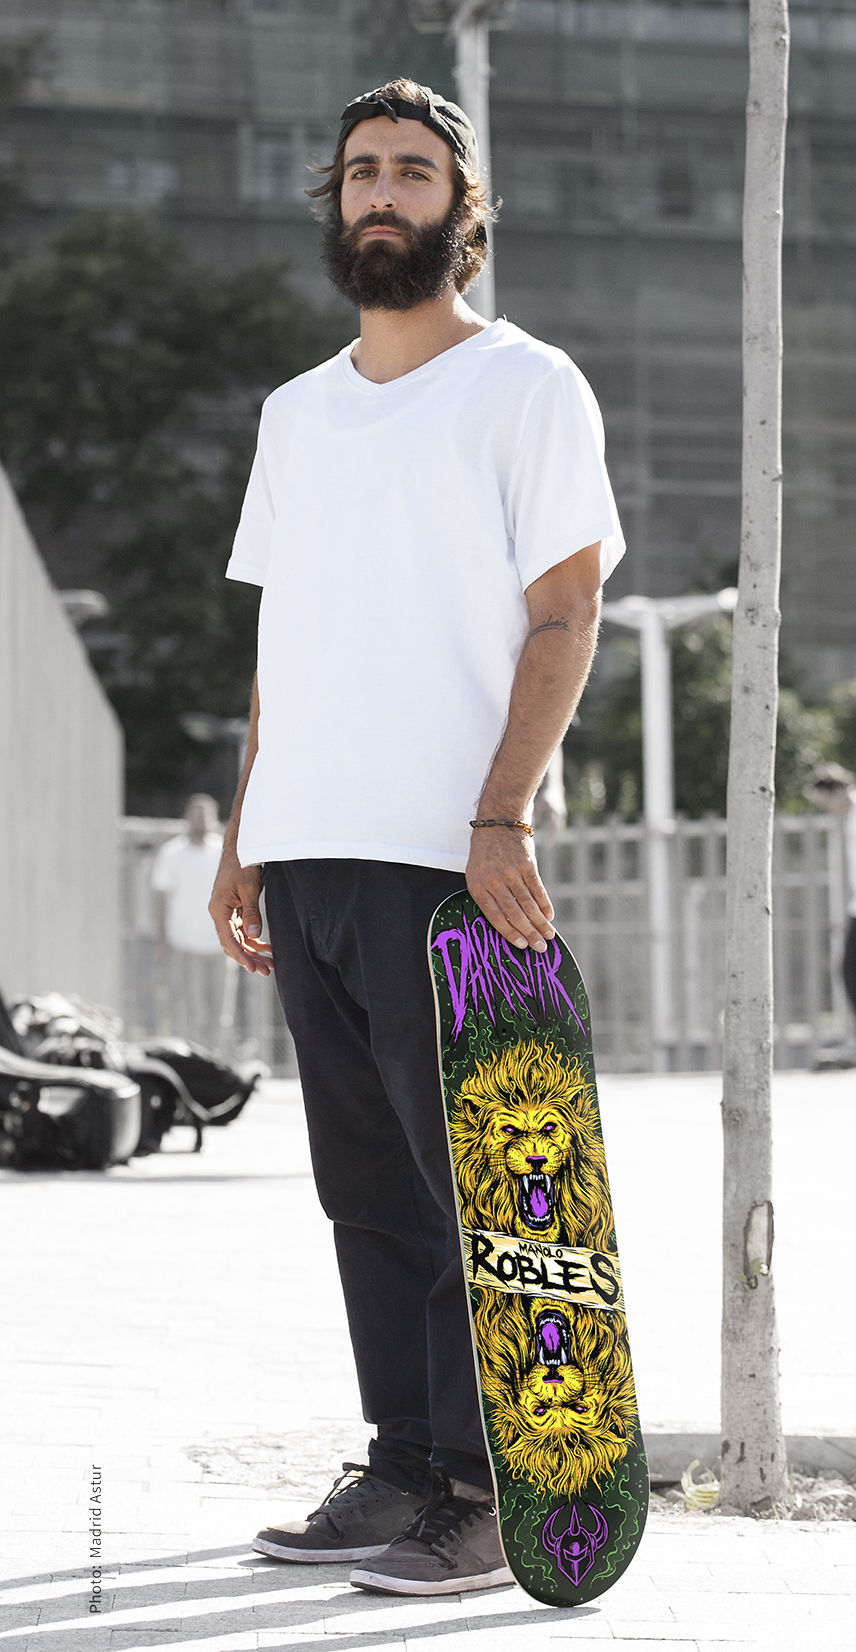 DARKSTAR-SKATEBOARDS-MANOLO-ROBLES.JPG